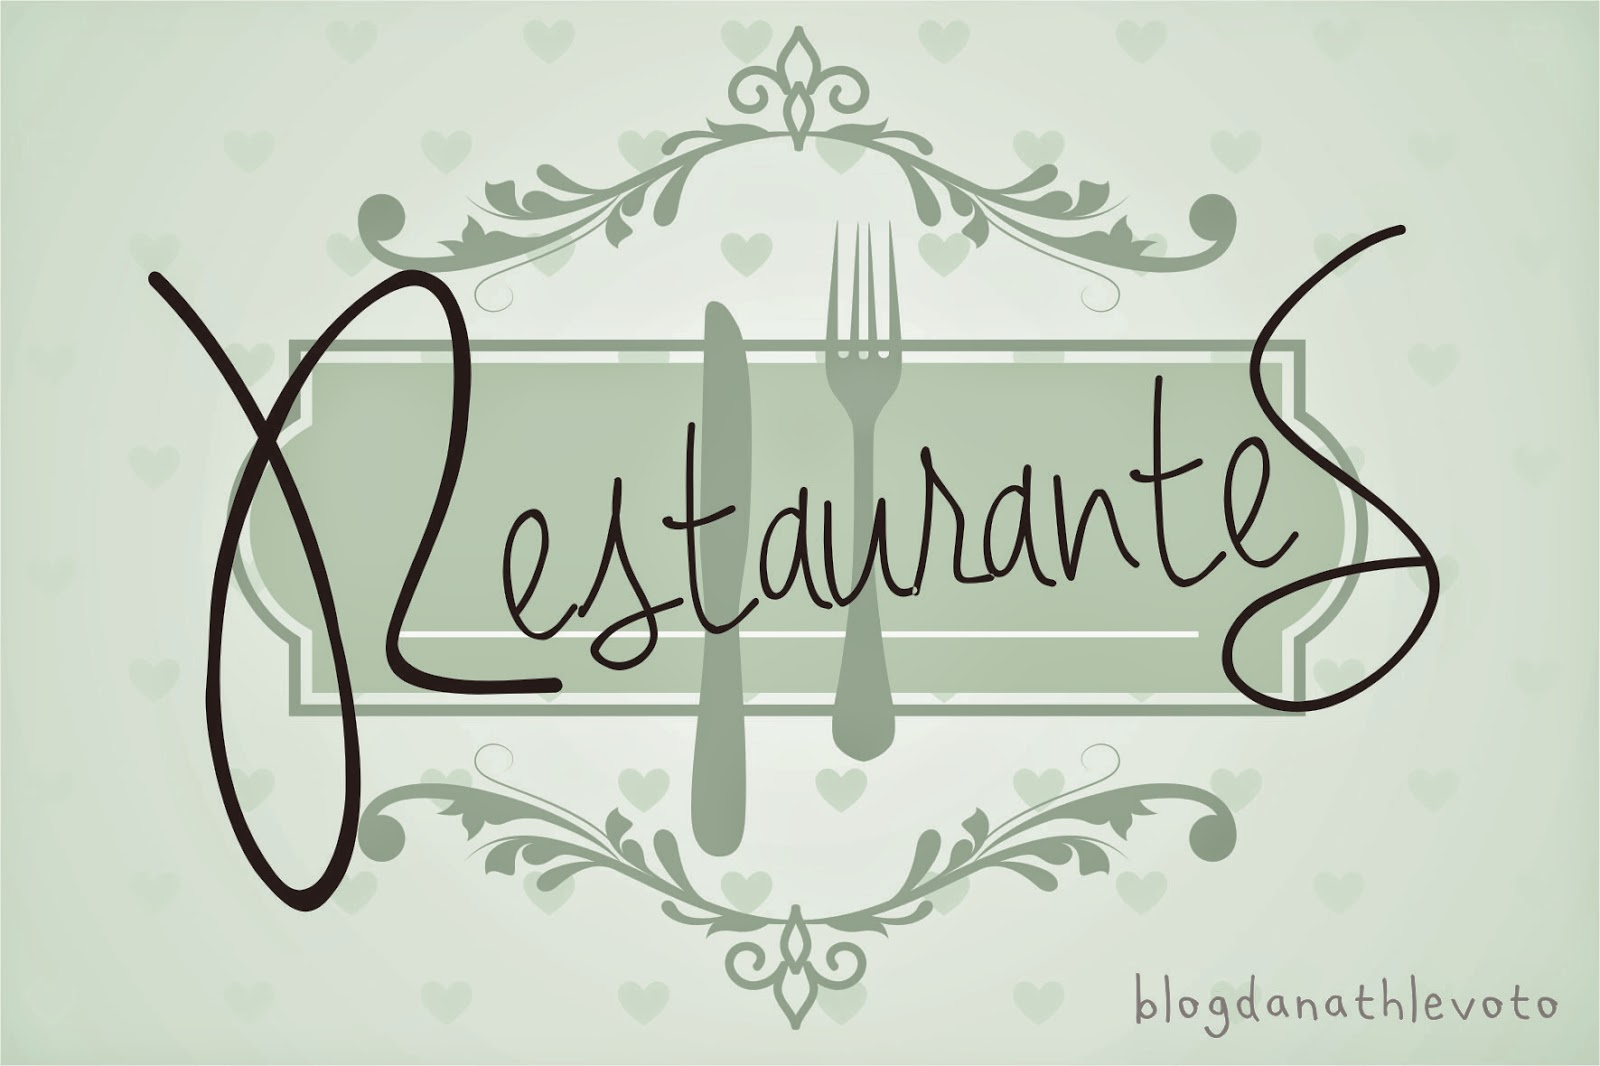 http://www.blogdanathlevoto.com/search/label/Restaurantes